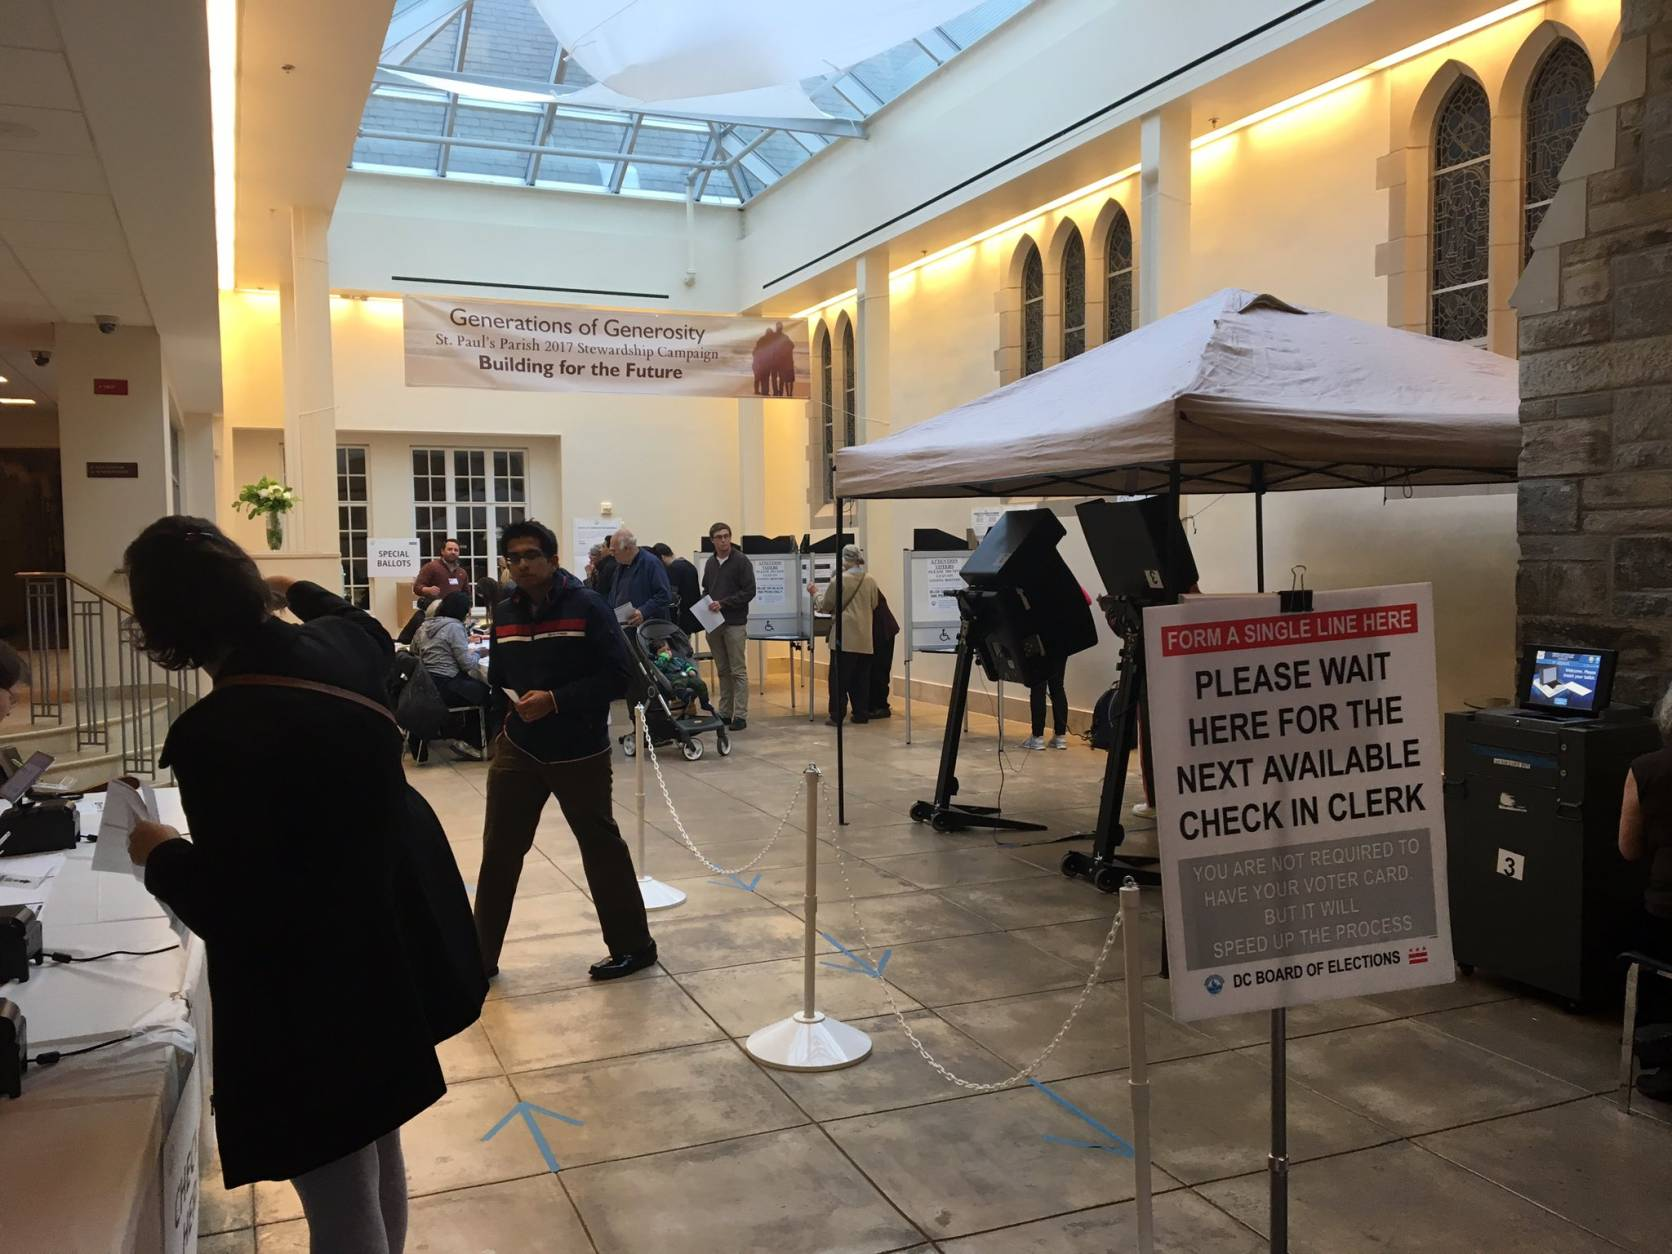 Voters say there are no lines at St. Paul's Parish on K Street NW as of 4:20 p.m. (Courtesy Jordan Connell via Twitter)